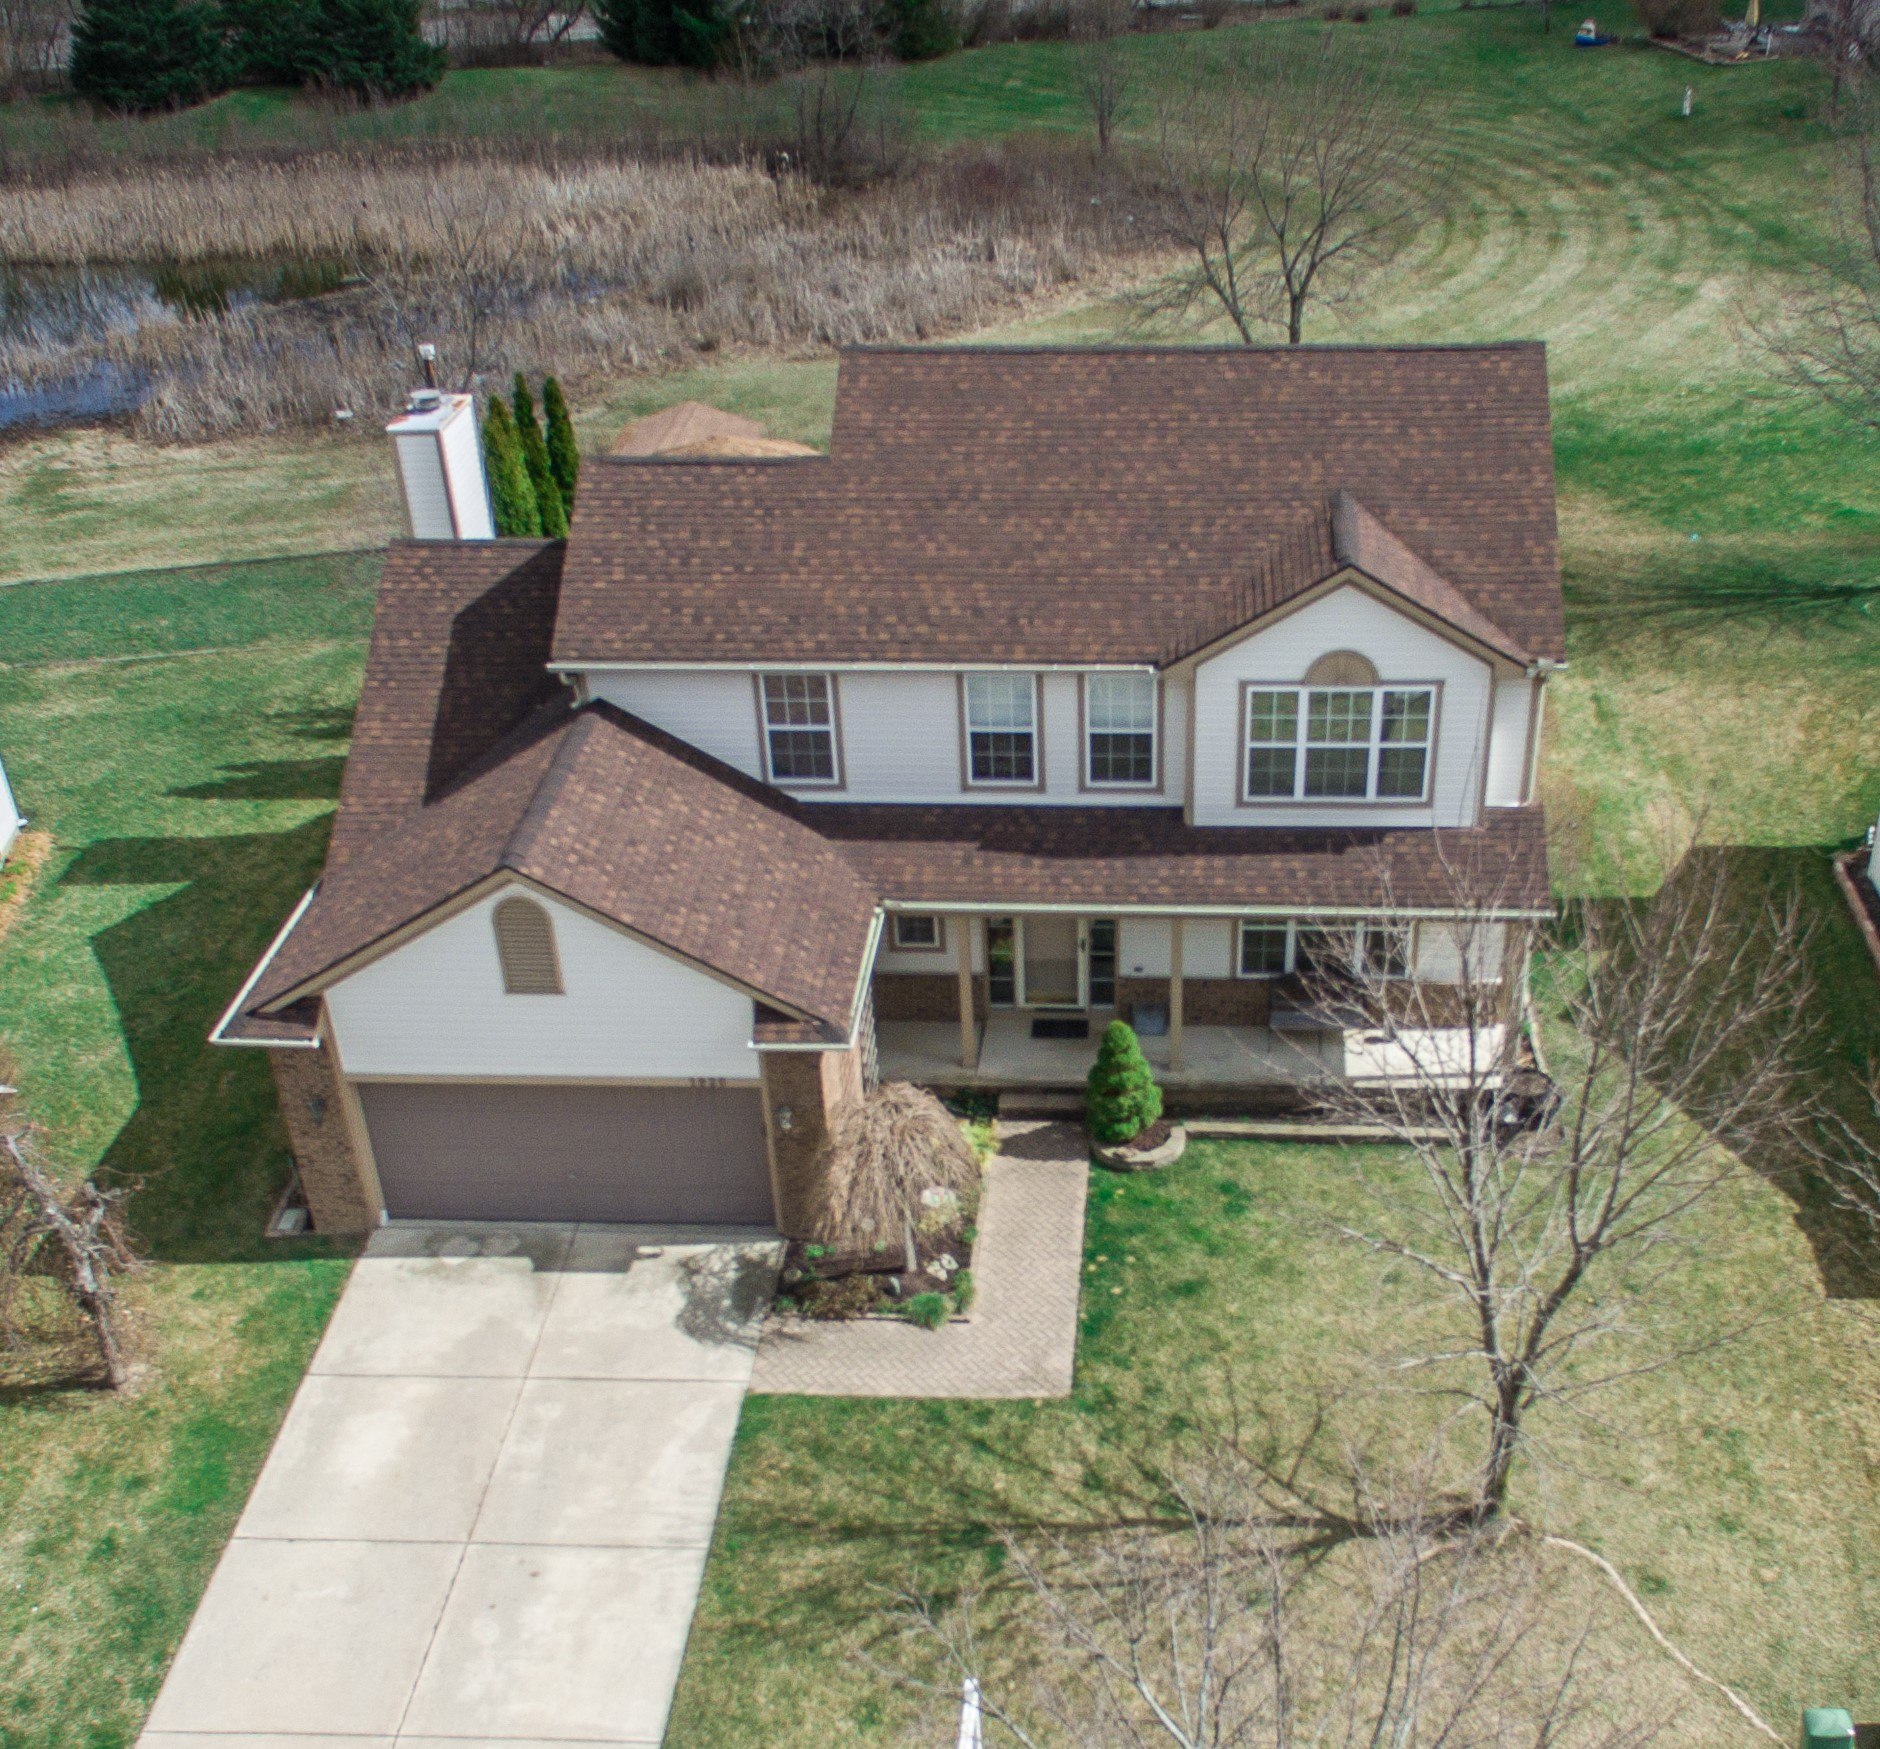 Oak Squire- Howell- $219,000   DOM 62 / Sold for 100% of asking price / 21 Showings